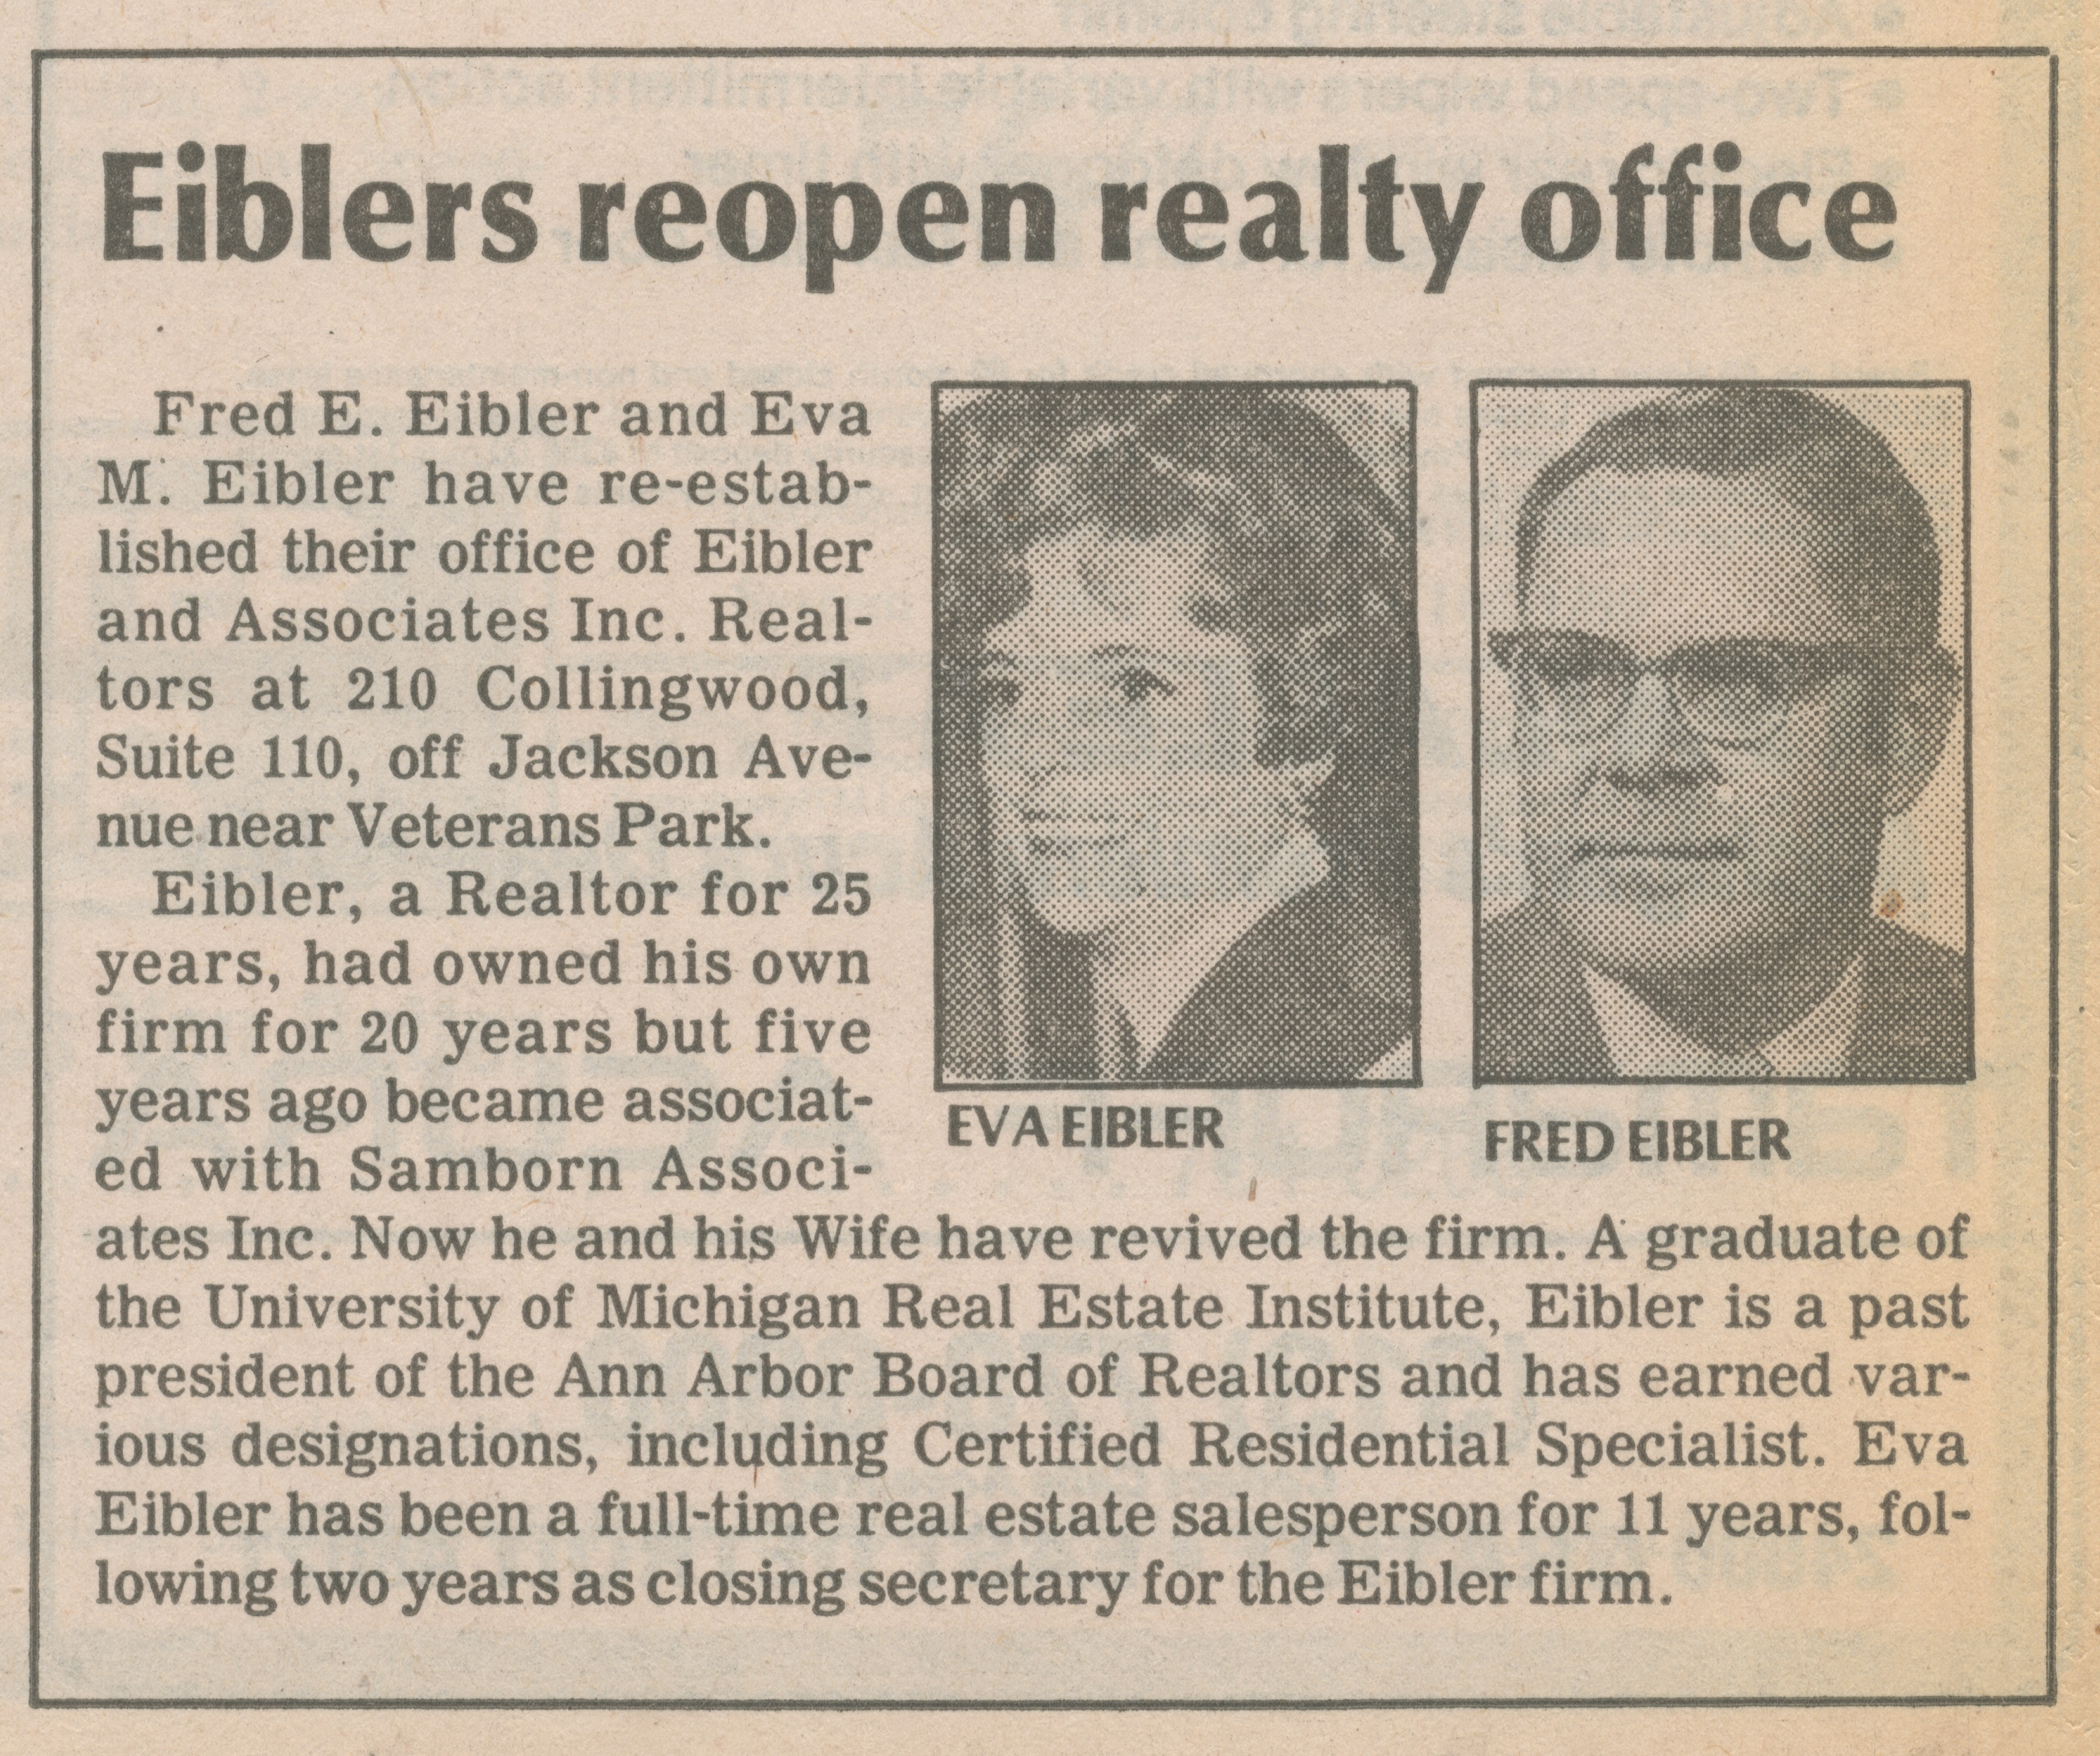 Eiblers reopen realty office image